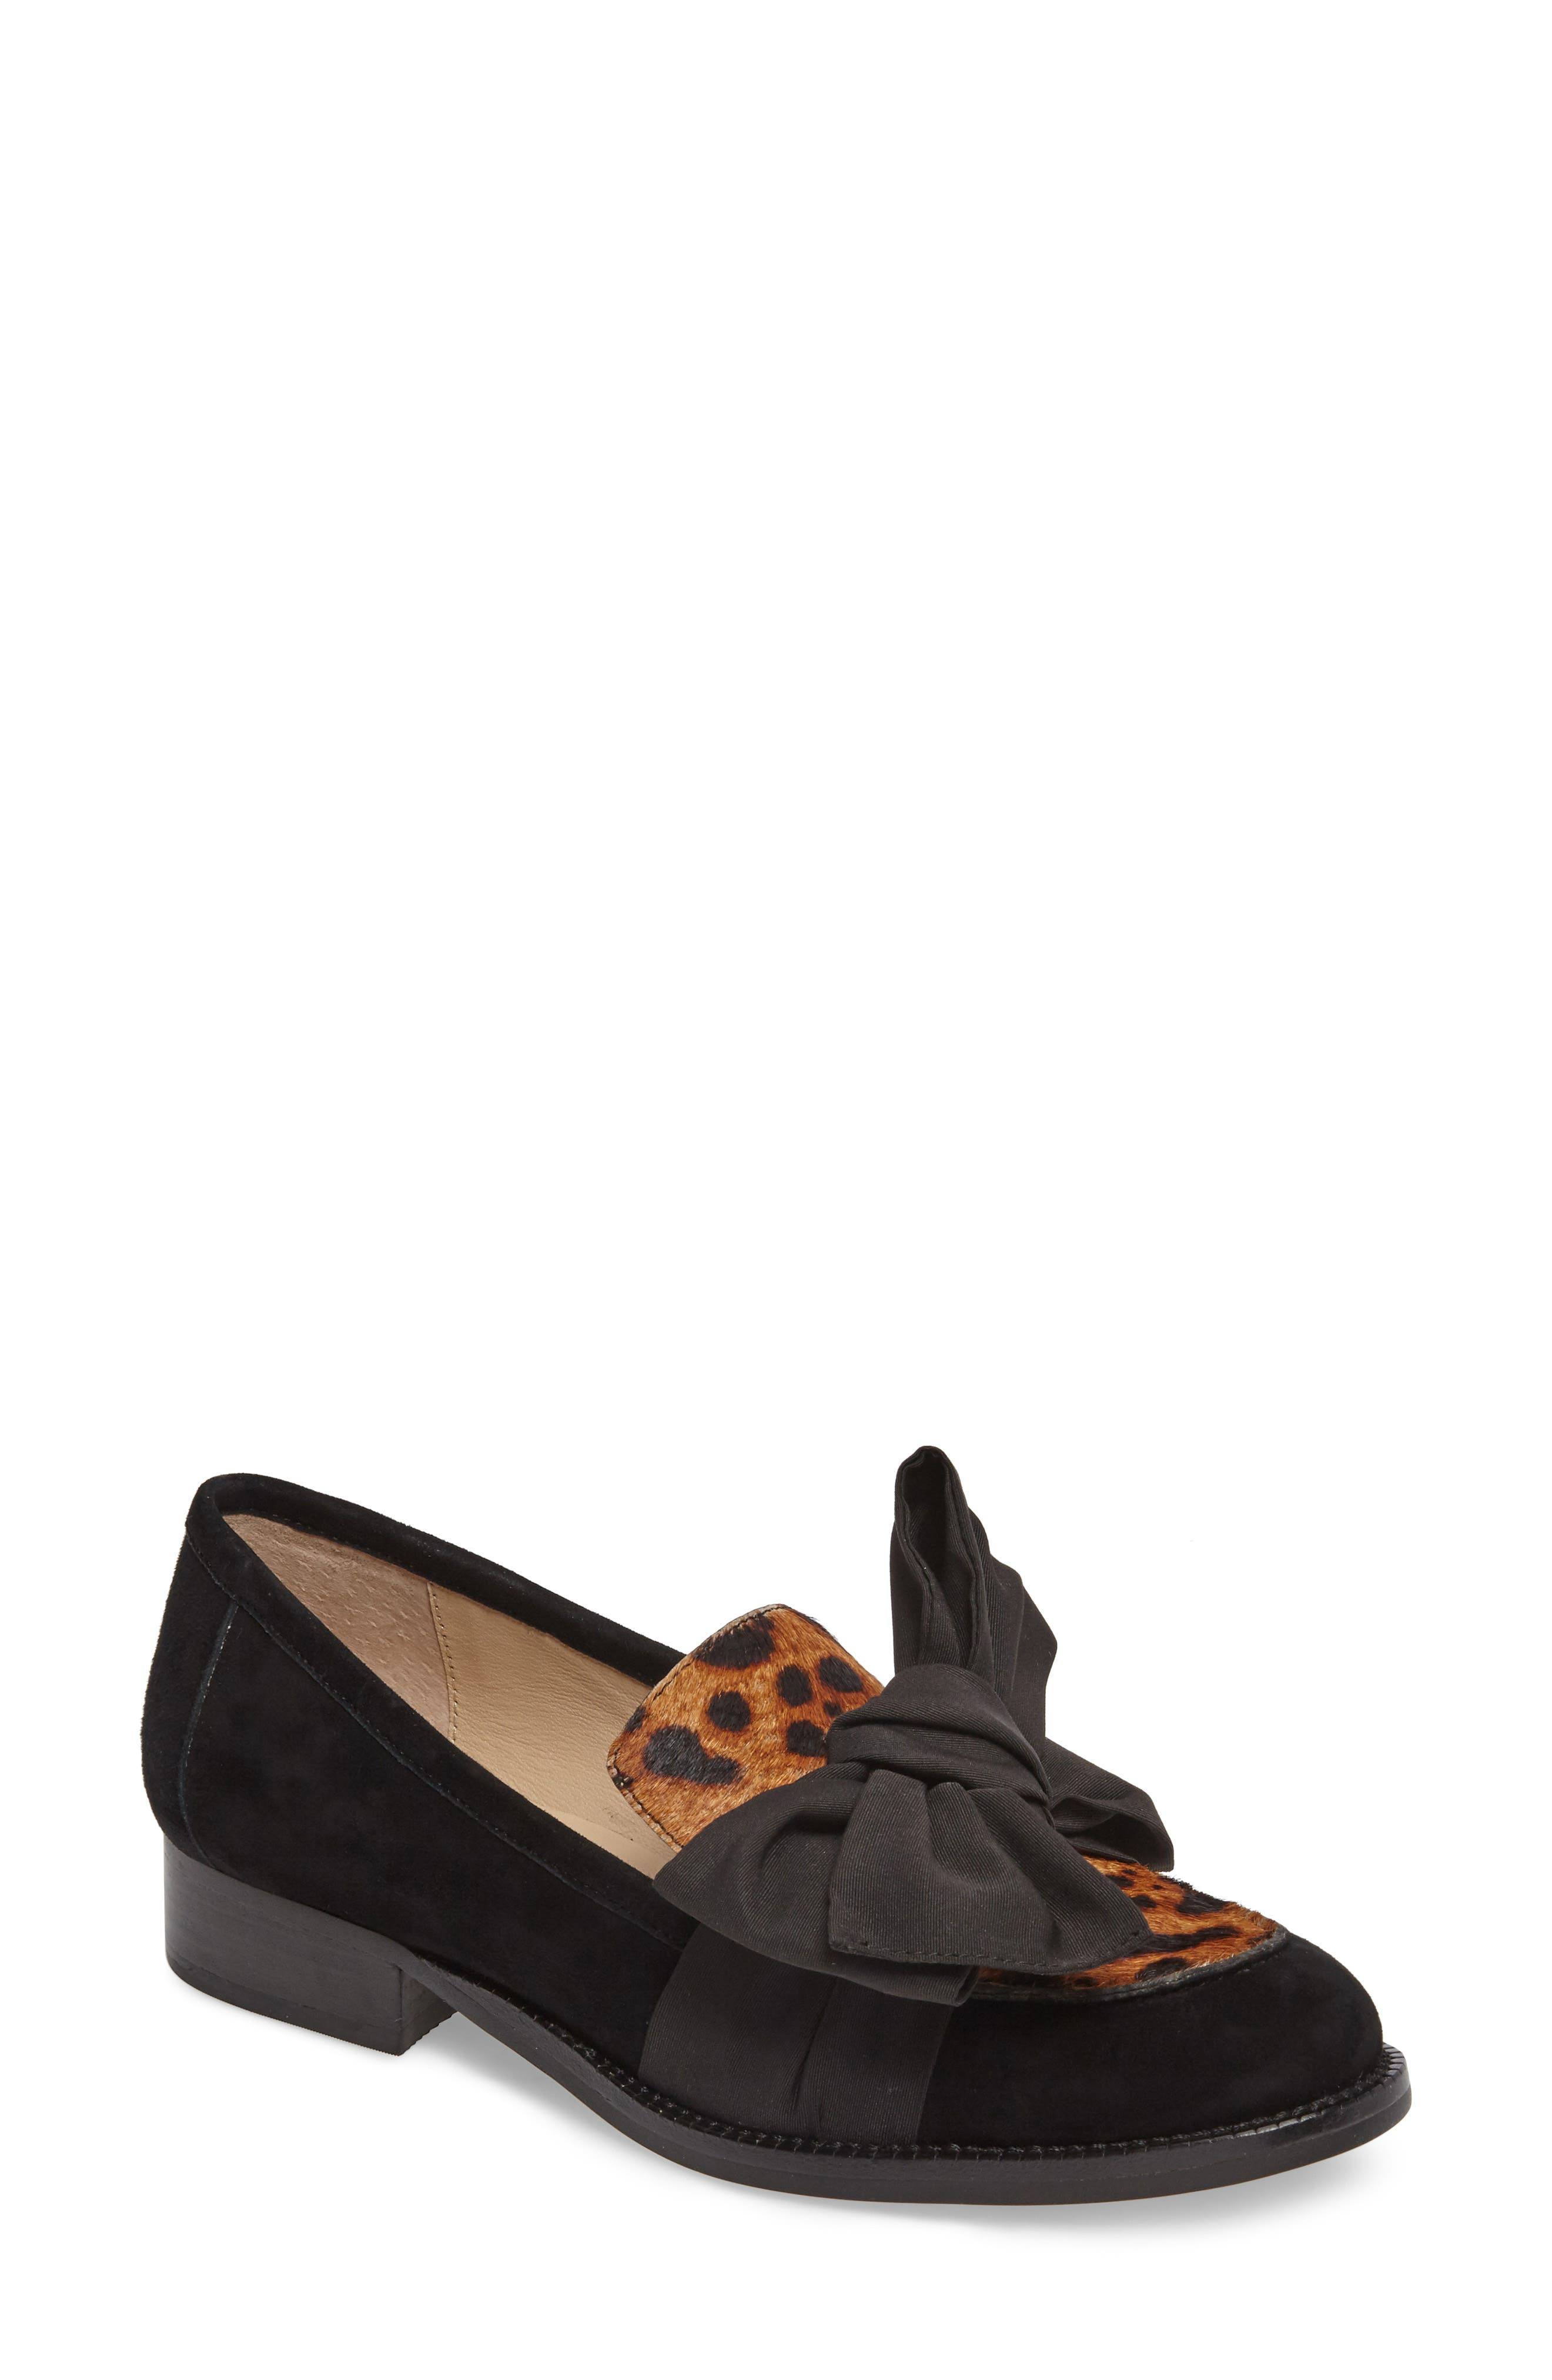 Main Image - Botkier Violet Bow Loafer (Women)